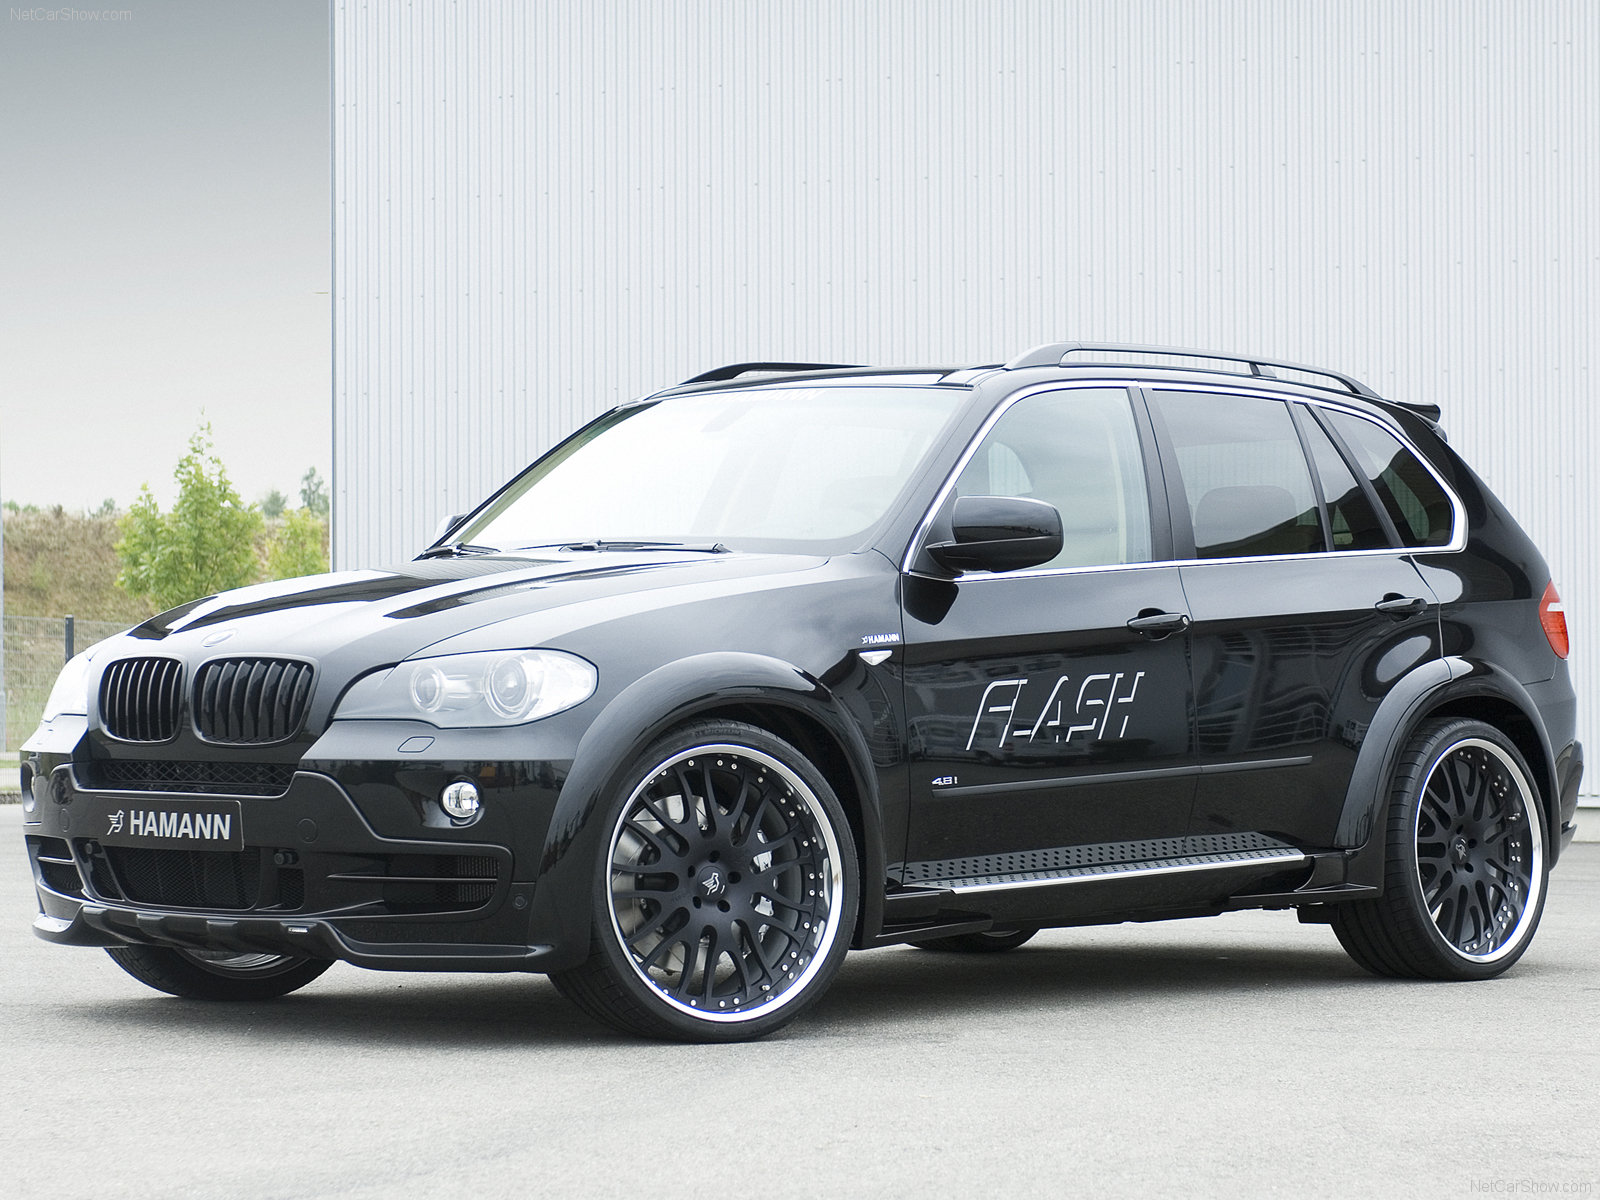 hamann bmw x5 flash photos photogallery with 17 pics. Black Bedroom Furniture Sets. Home Design Ideas